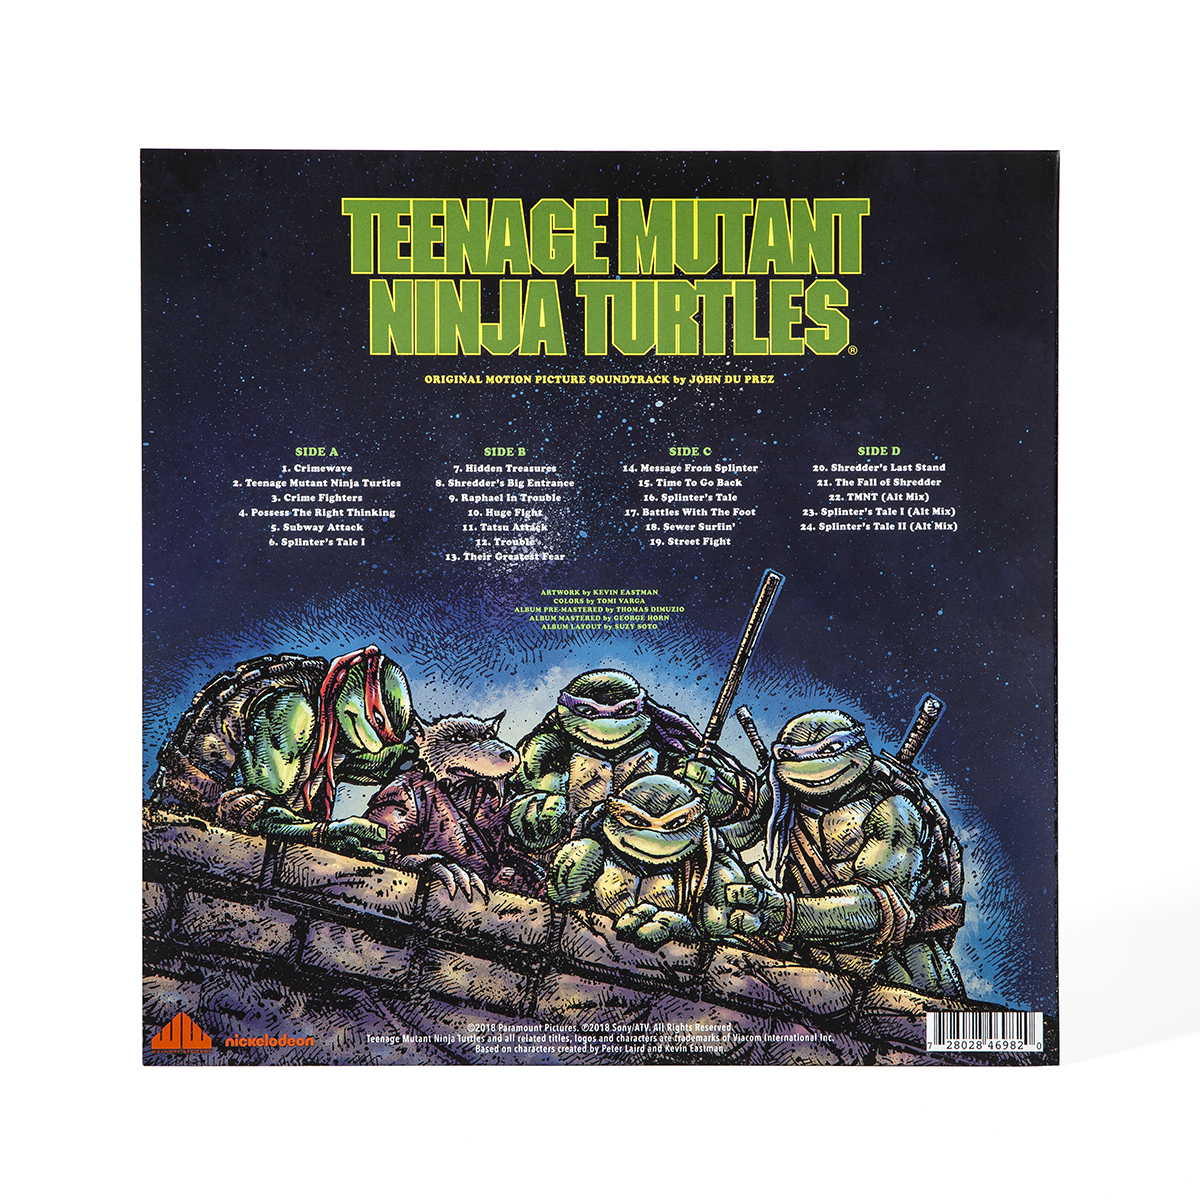 Waxworks To Release 1990 S Teenage Mutant Ninja Turtles Ost This Friday Music News Tiny Mix Tapes